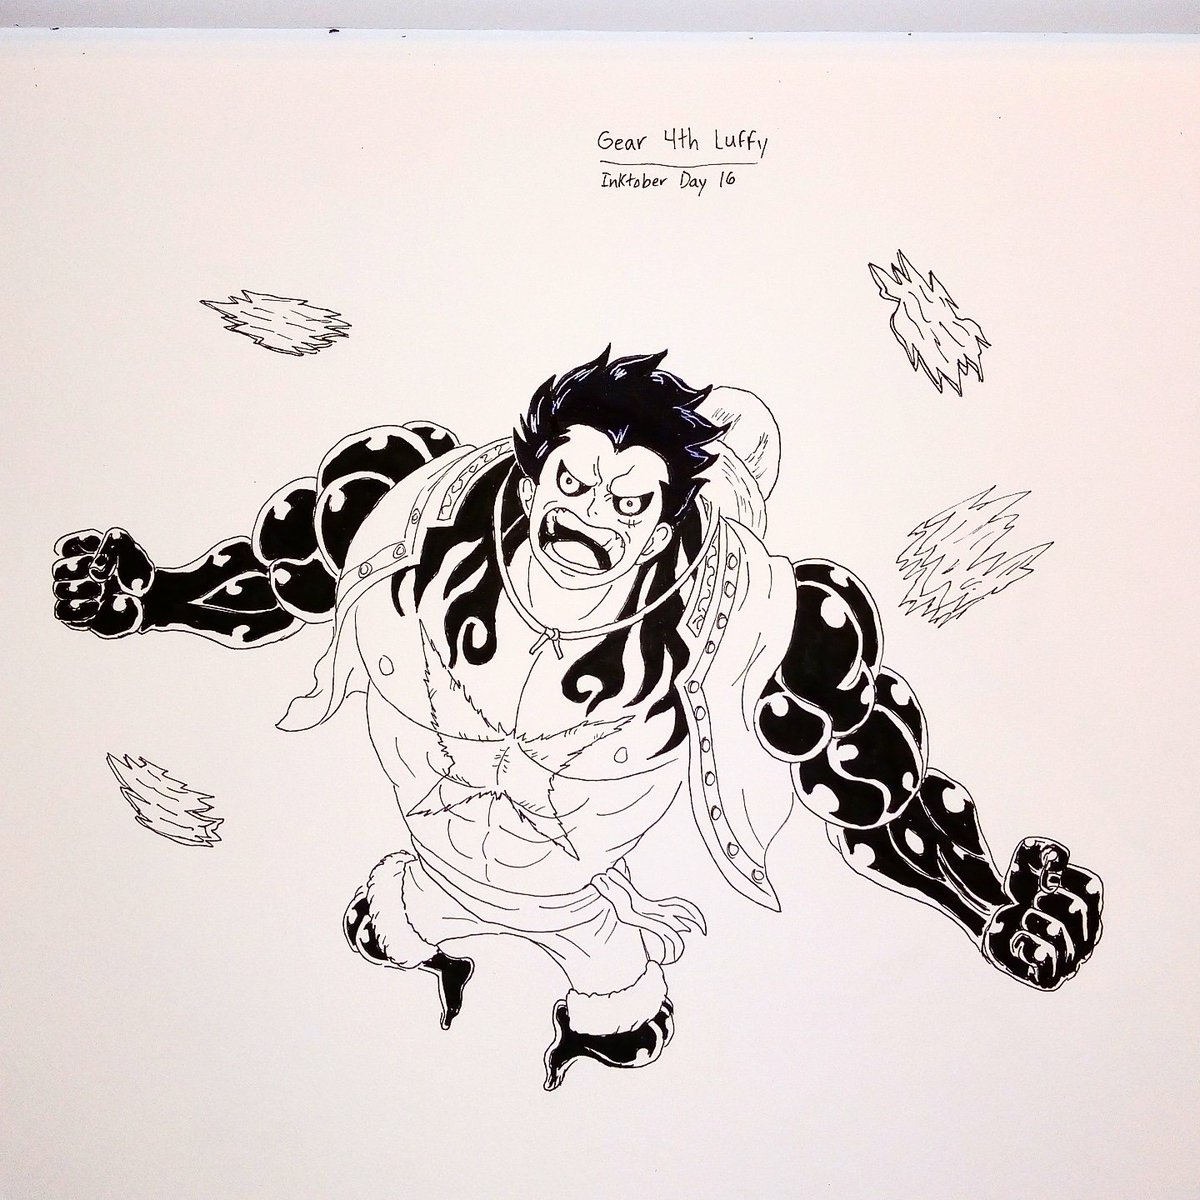 Here Is My Sixteenth Inktober Picture Of Gear 4 Luffy From One Piece